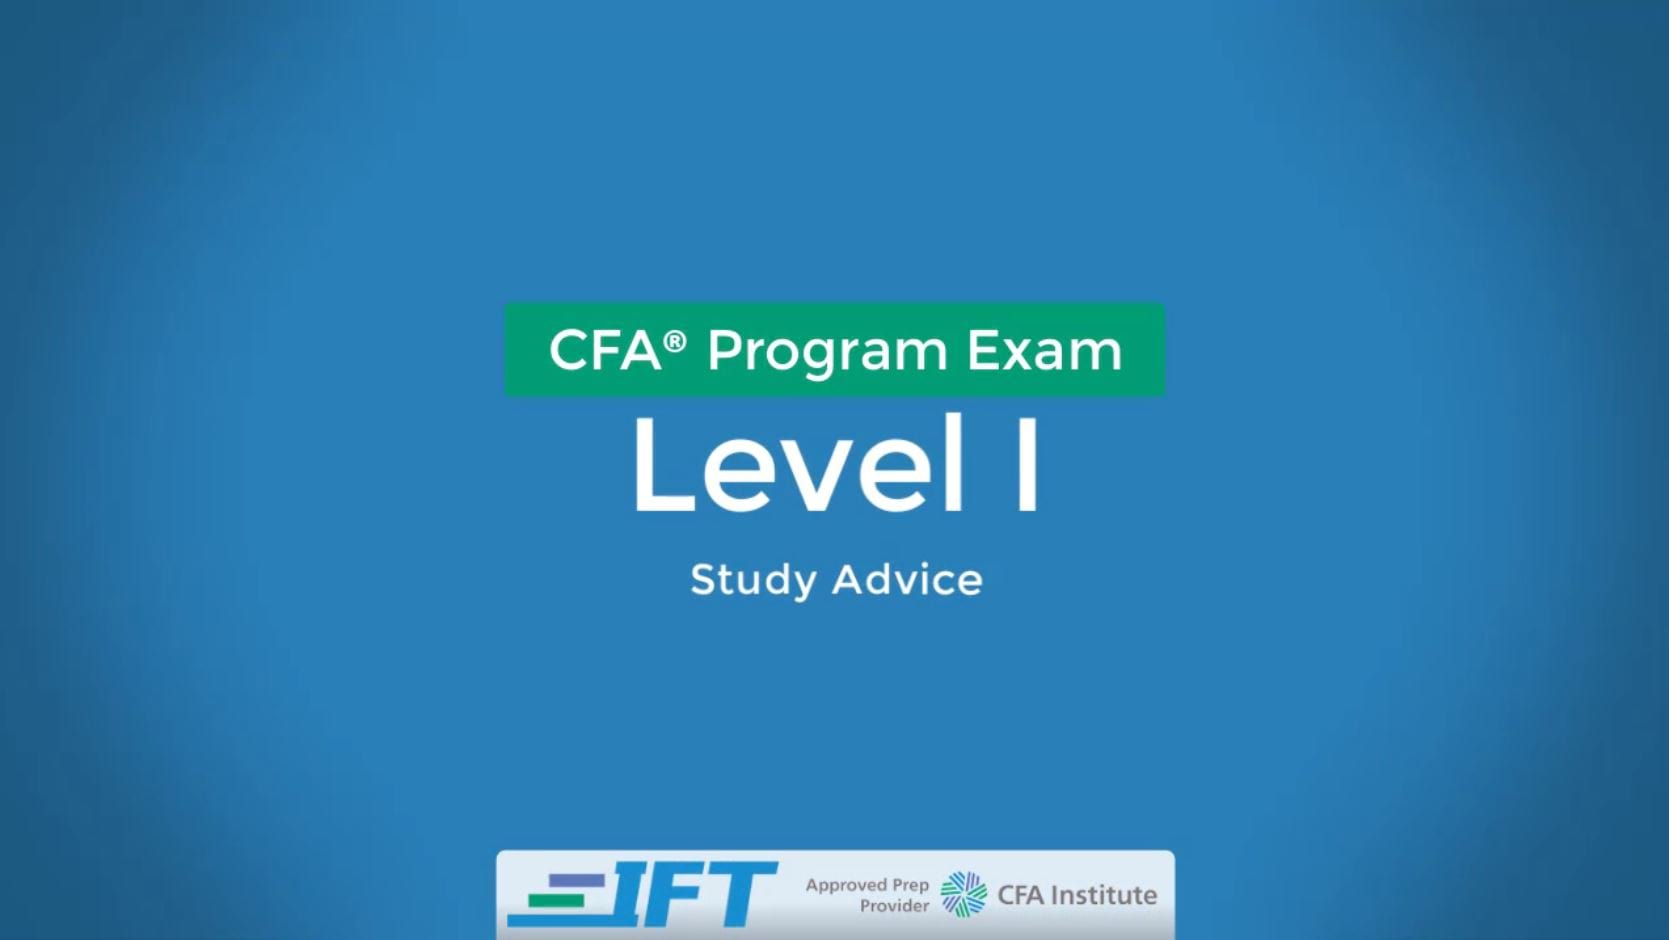 Final Word – Dec 2020 Level I CFA Exam Study Advice